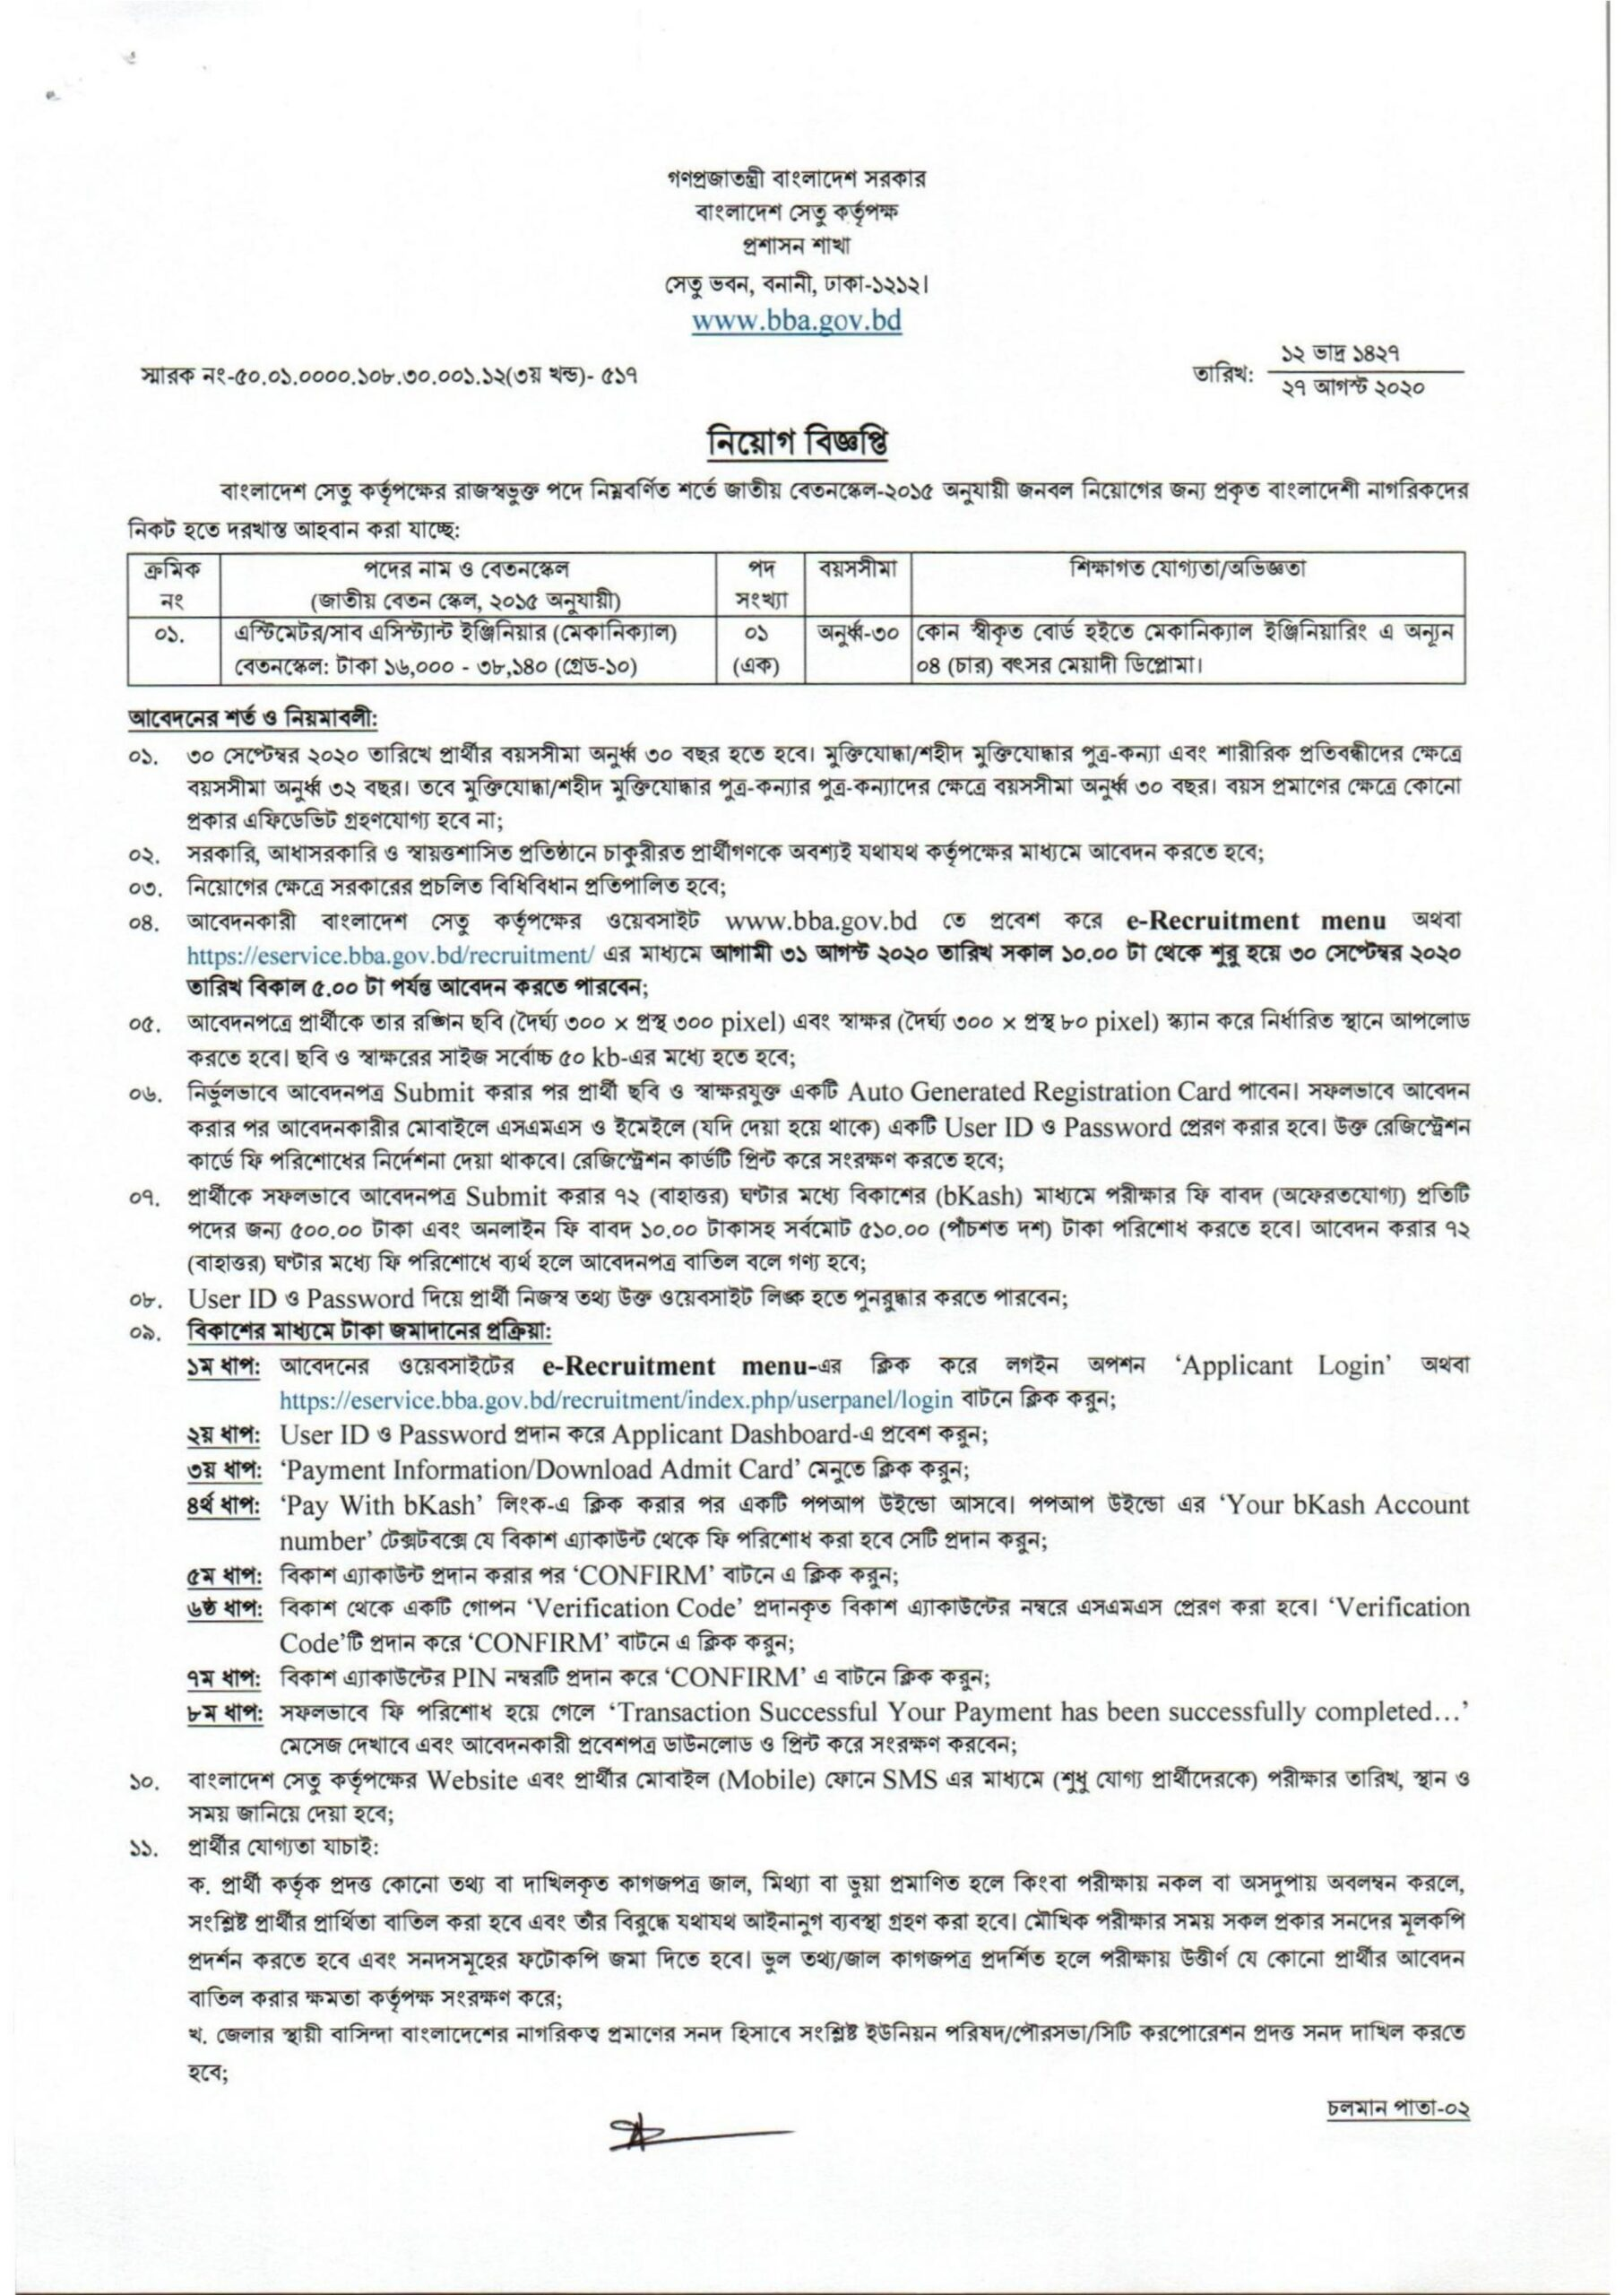 Bangladesh Bridge Authority Job Circular 2020 1